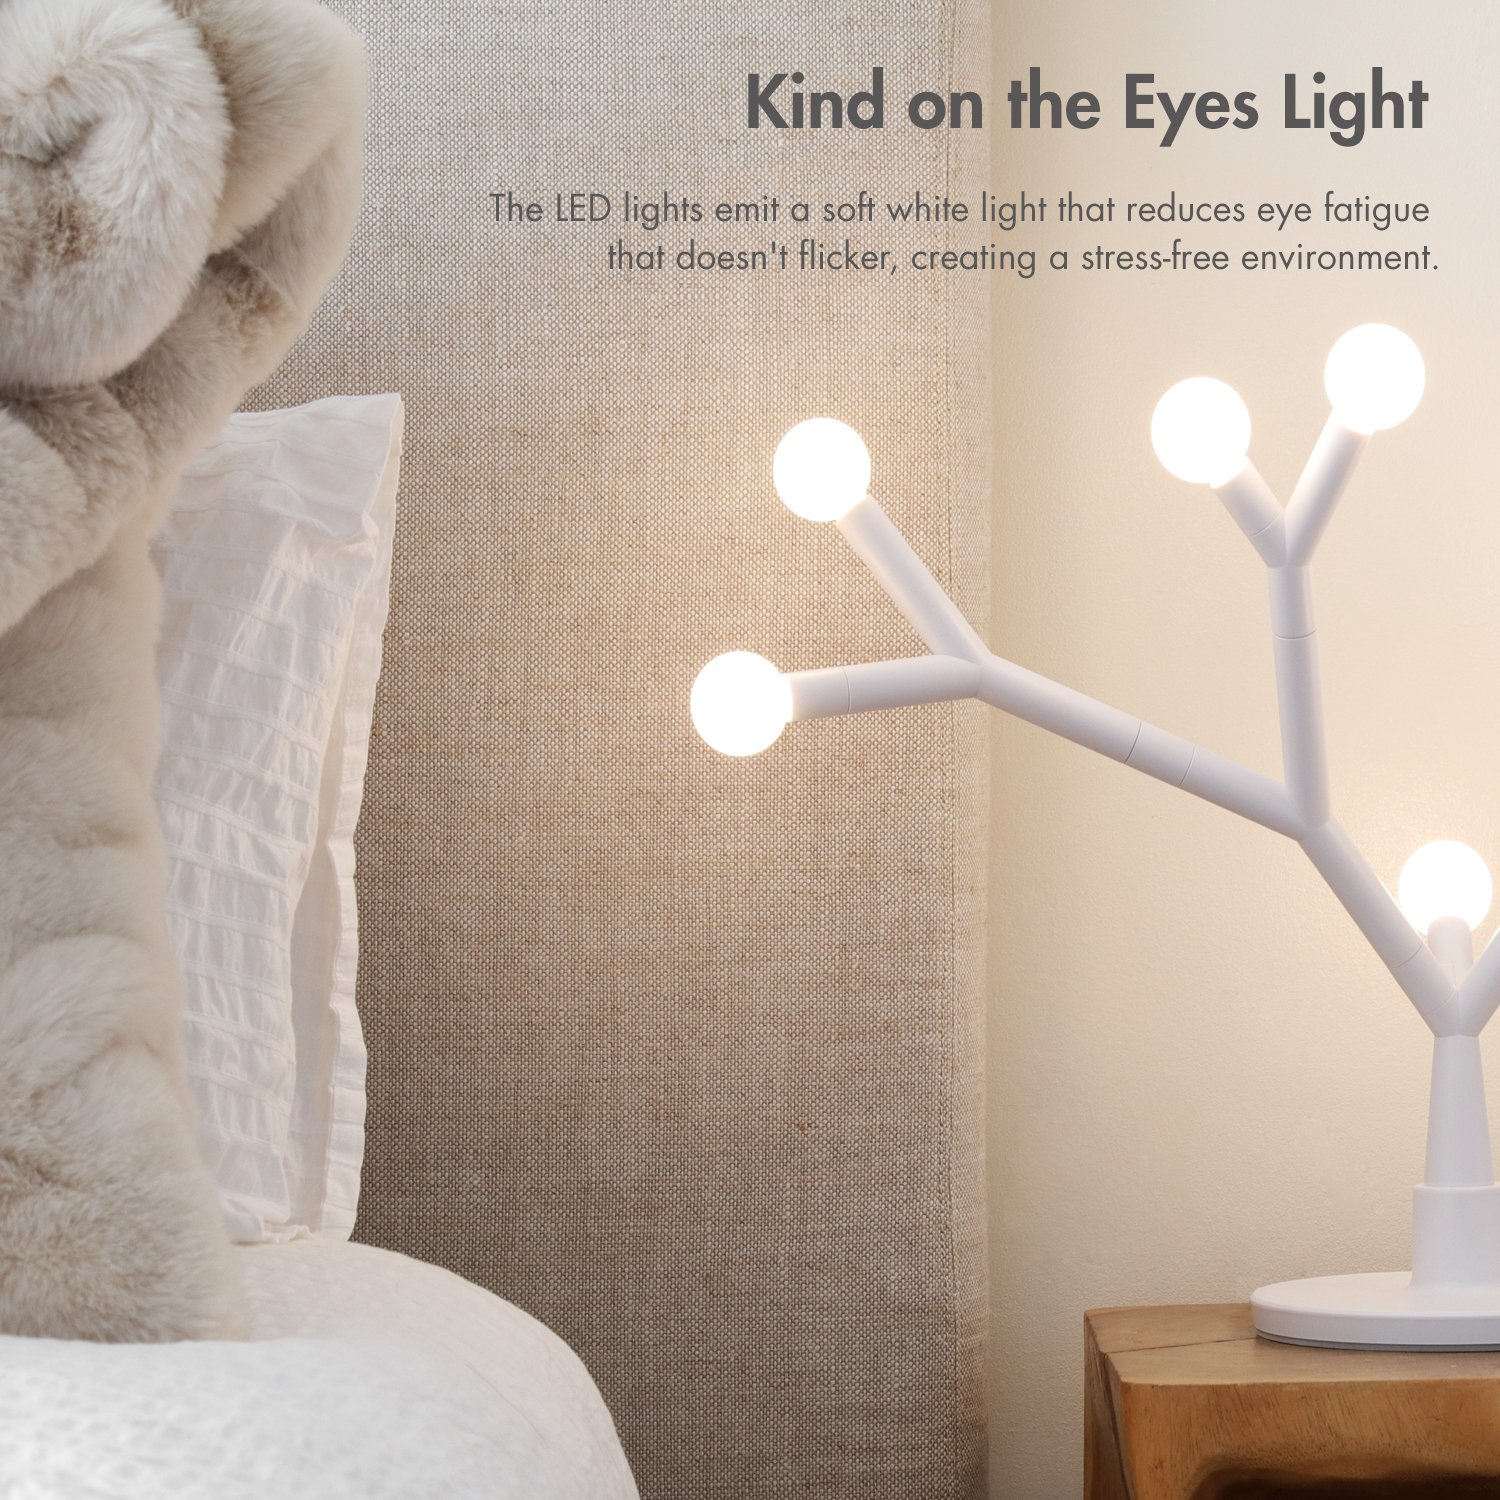 Tenergy Lumi Bloom Modern Table Lamp 8W 750LM LED DIY Nightstand Lamp Transformable for Hundreds Possible Shapes with 8 Warm White Bulbs Creative Stylish Lamp for Living Room Bedroom Office Ideal Gift by Tenergy (Image #4)